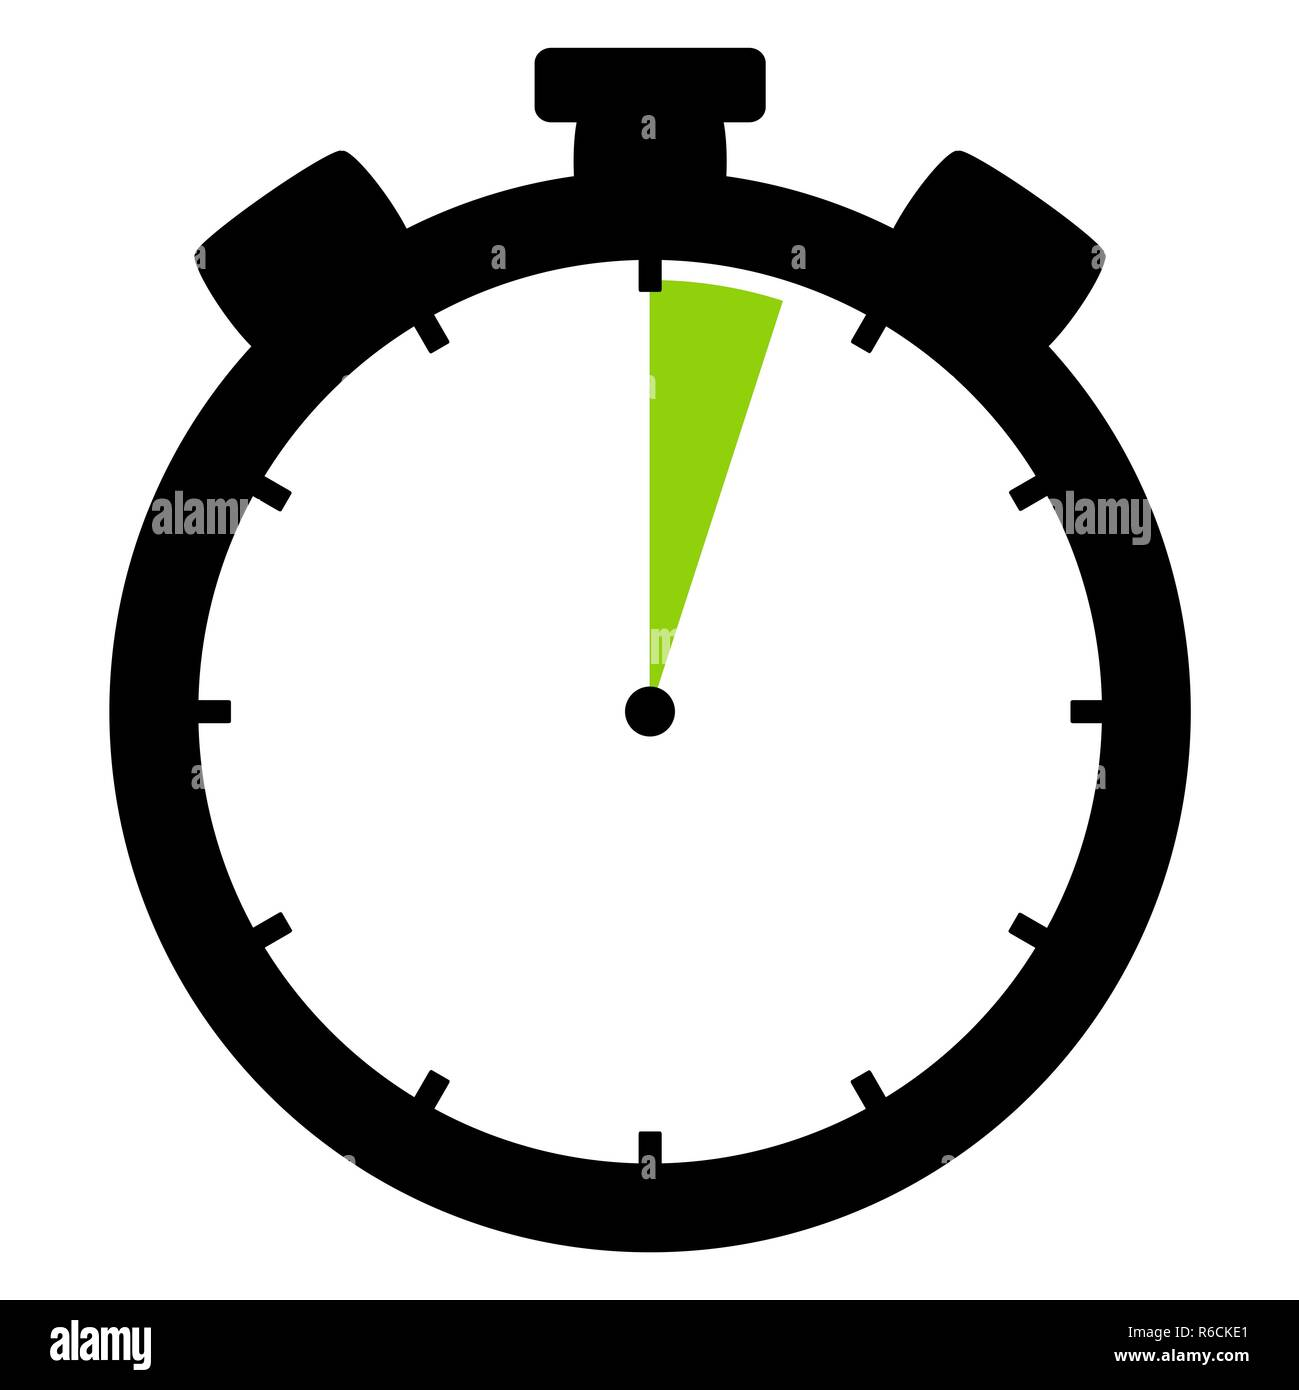 stopwatch icon: 3 minutes or 3 seconds - Stock Image